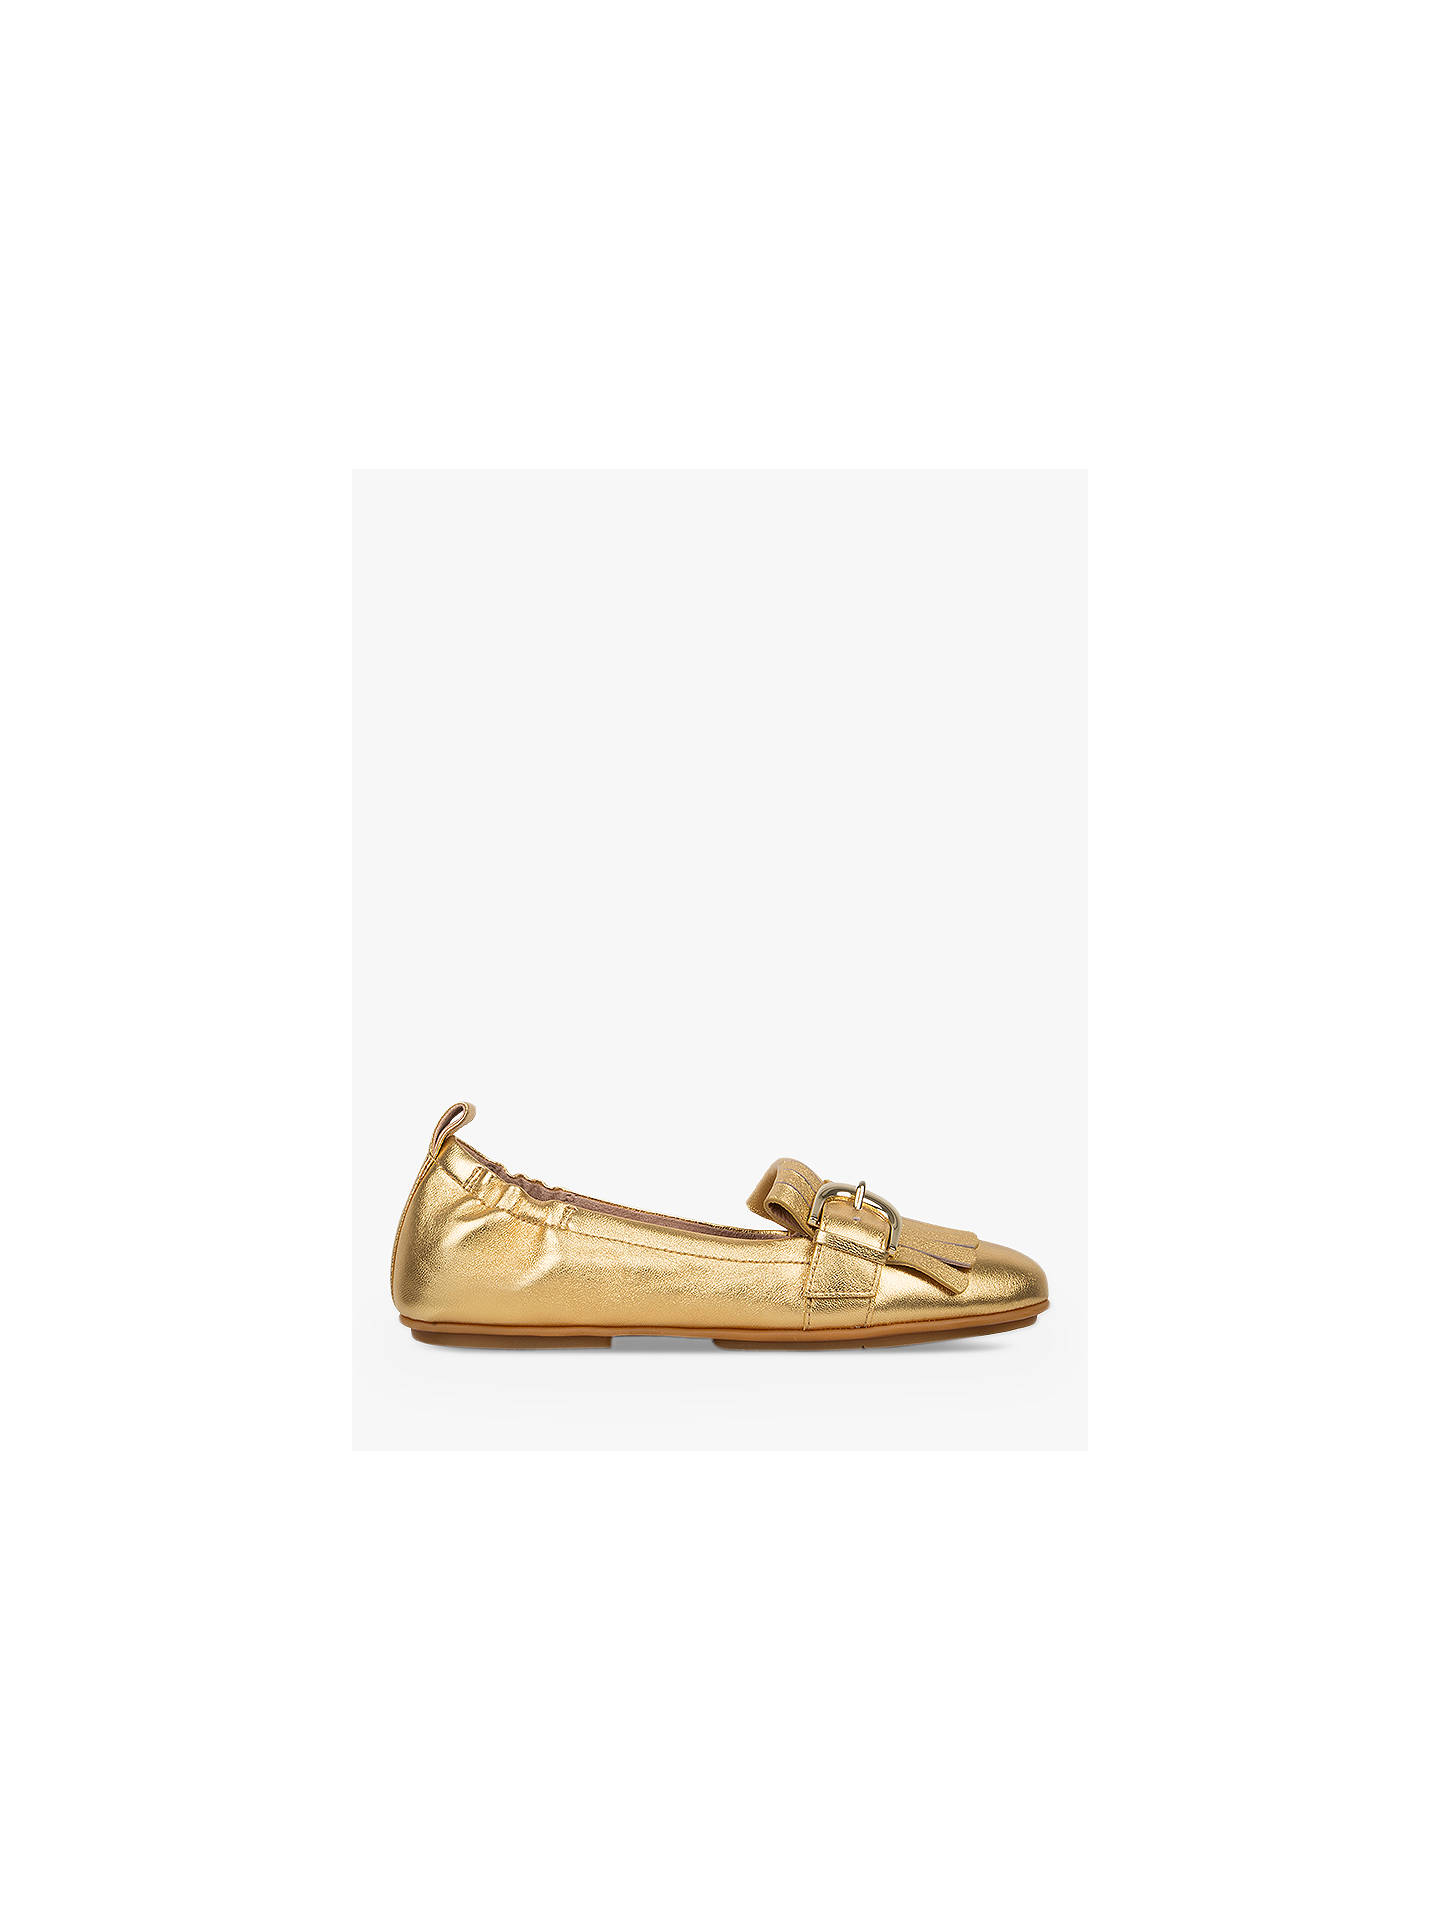 Fitflop Allegro Fringe Flat Loafer Pumps Gold Leather At John Lewis